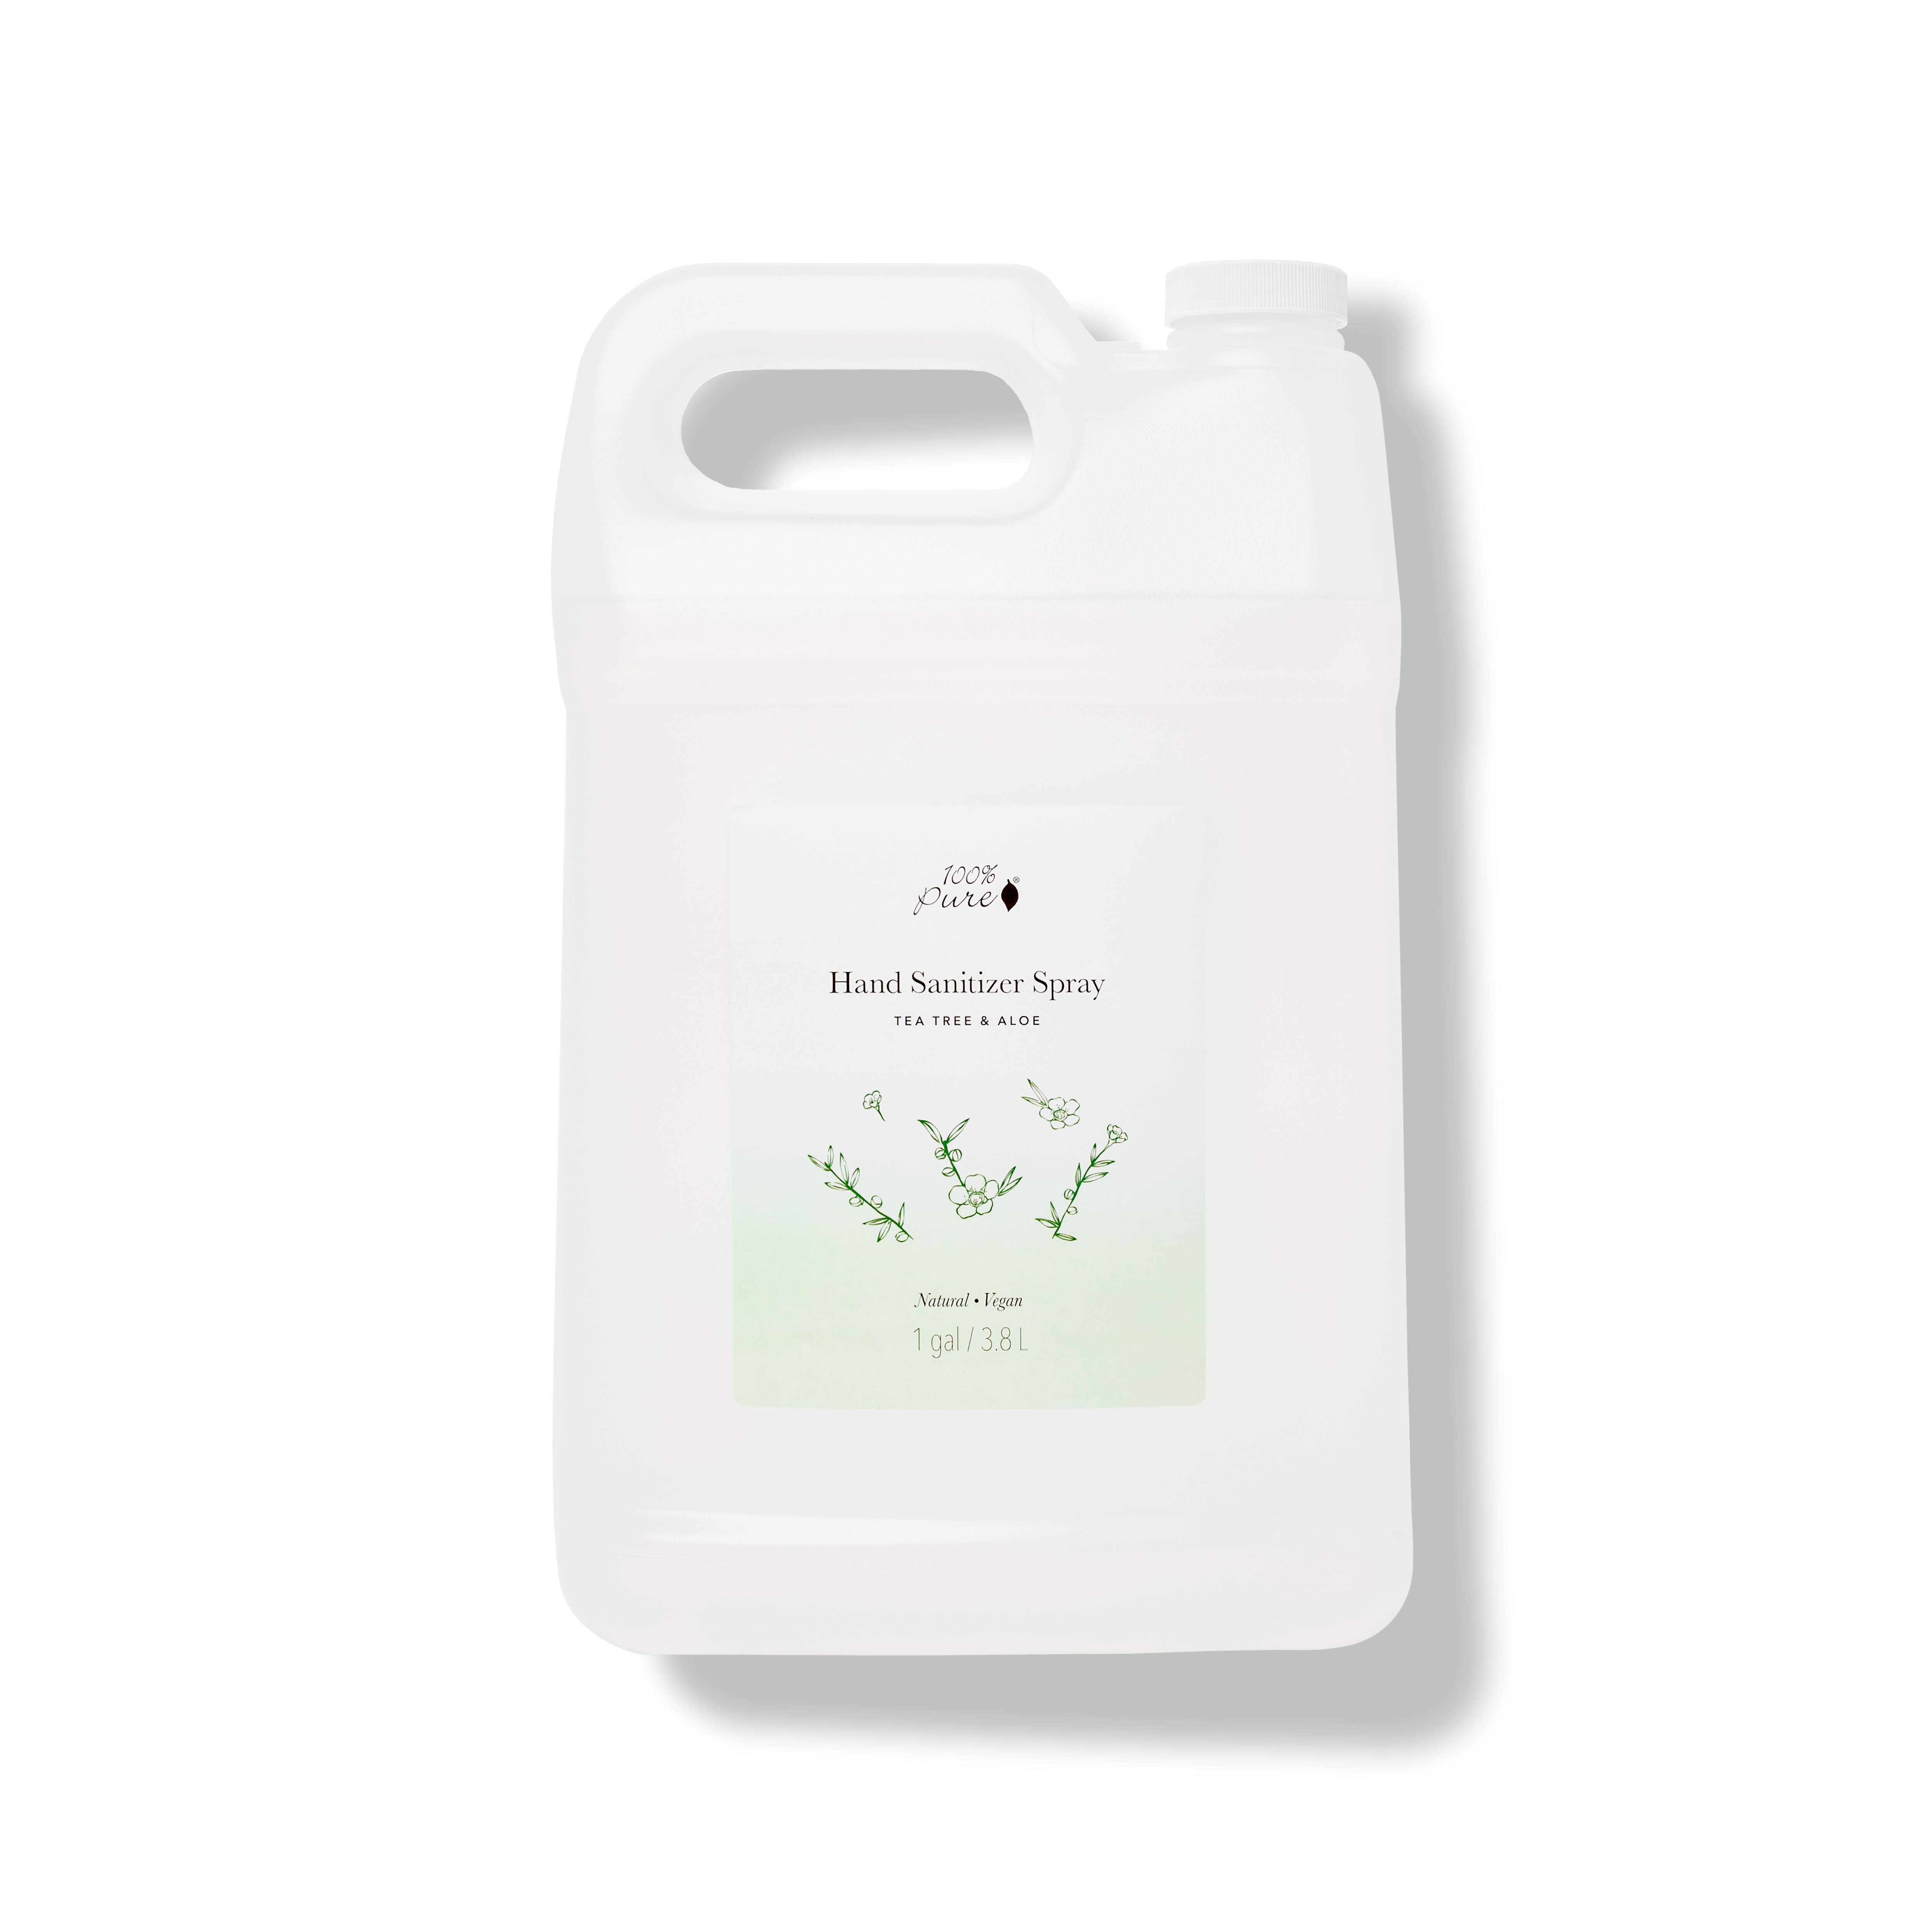 Product Grid - Hand Sanitizer Spray Gallon